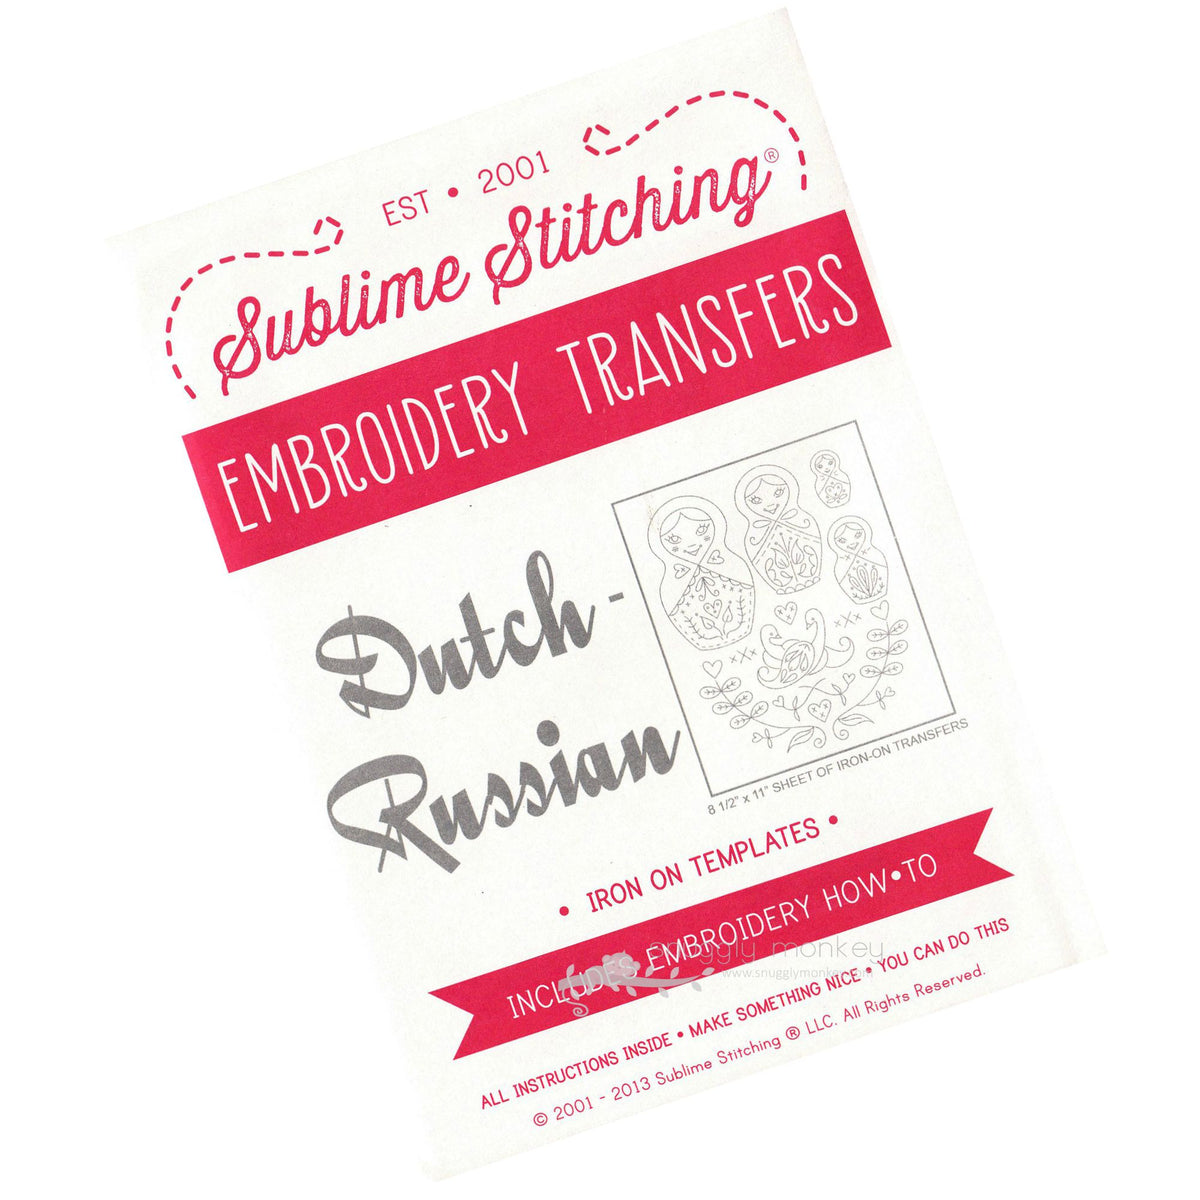 Sublime Stitching Dutch Russian Hand Embroidery Pattern Patterns - Snuggly Monkey